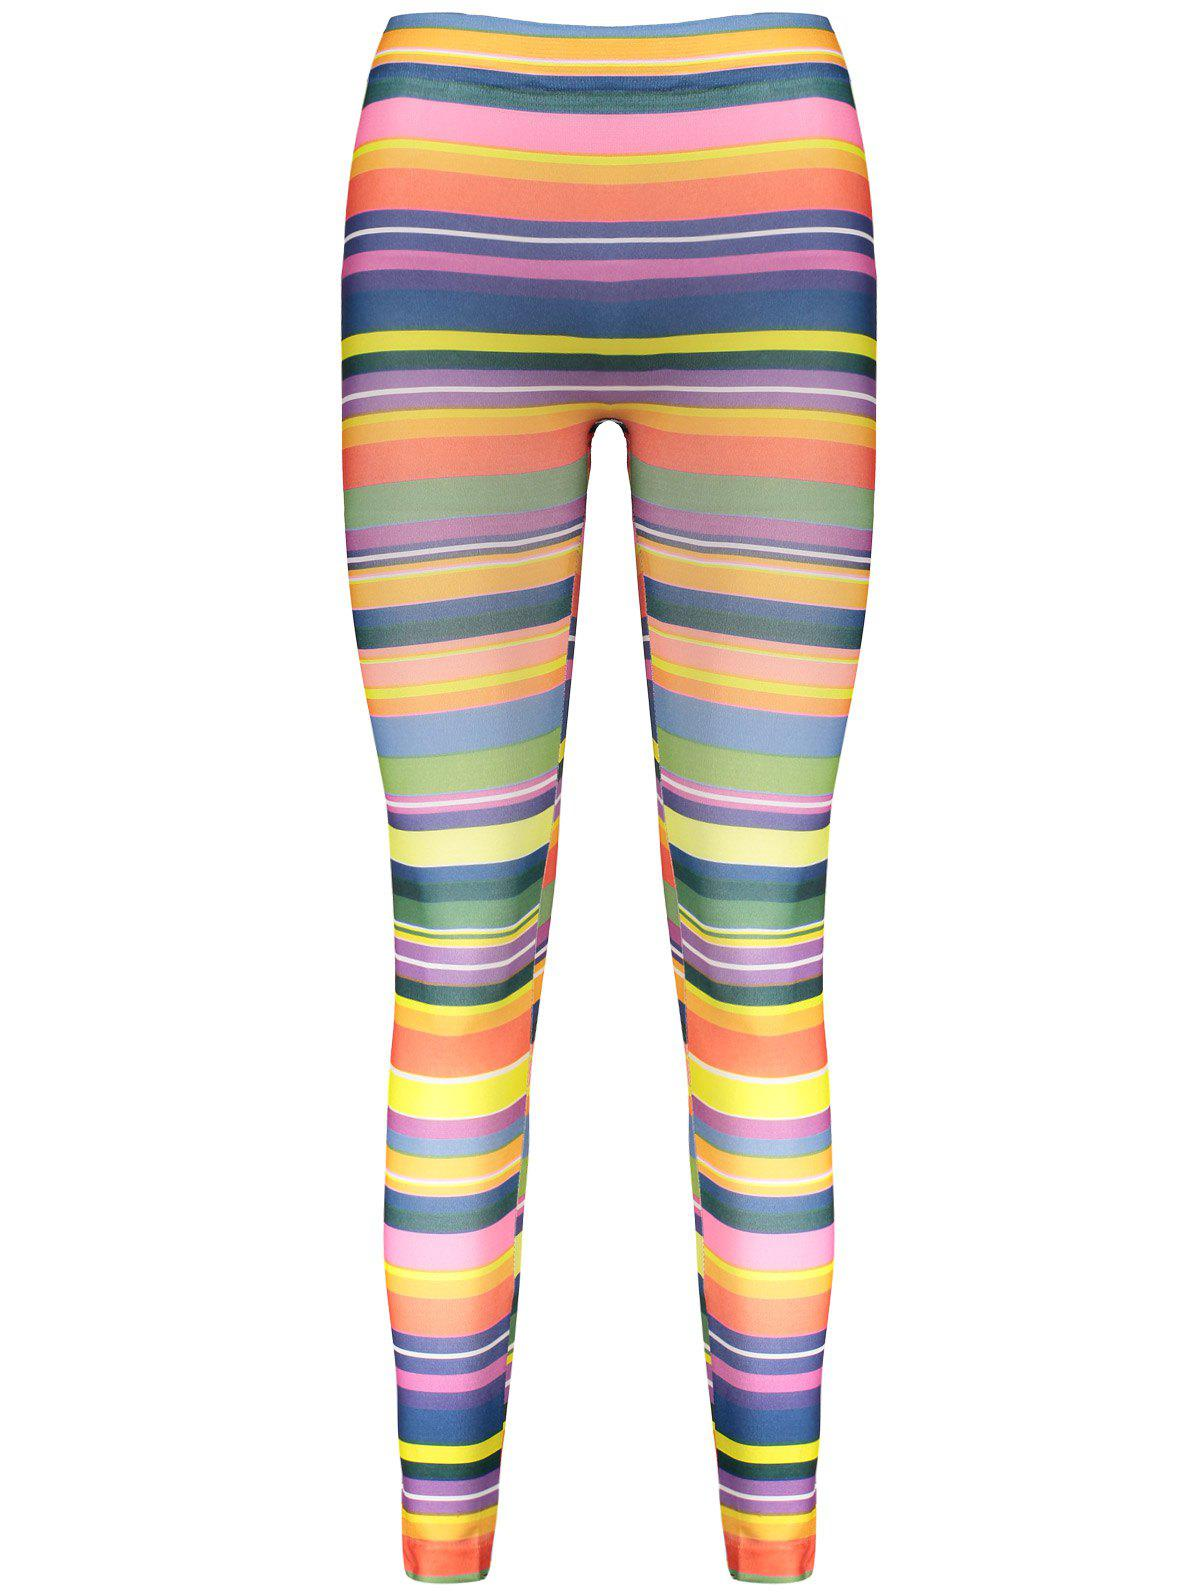 High Elasticity Straight Leg Colorful Print Women's Leggings - COLORMIX ONE SIZE